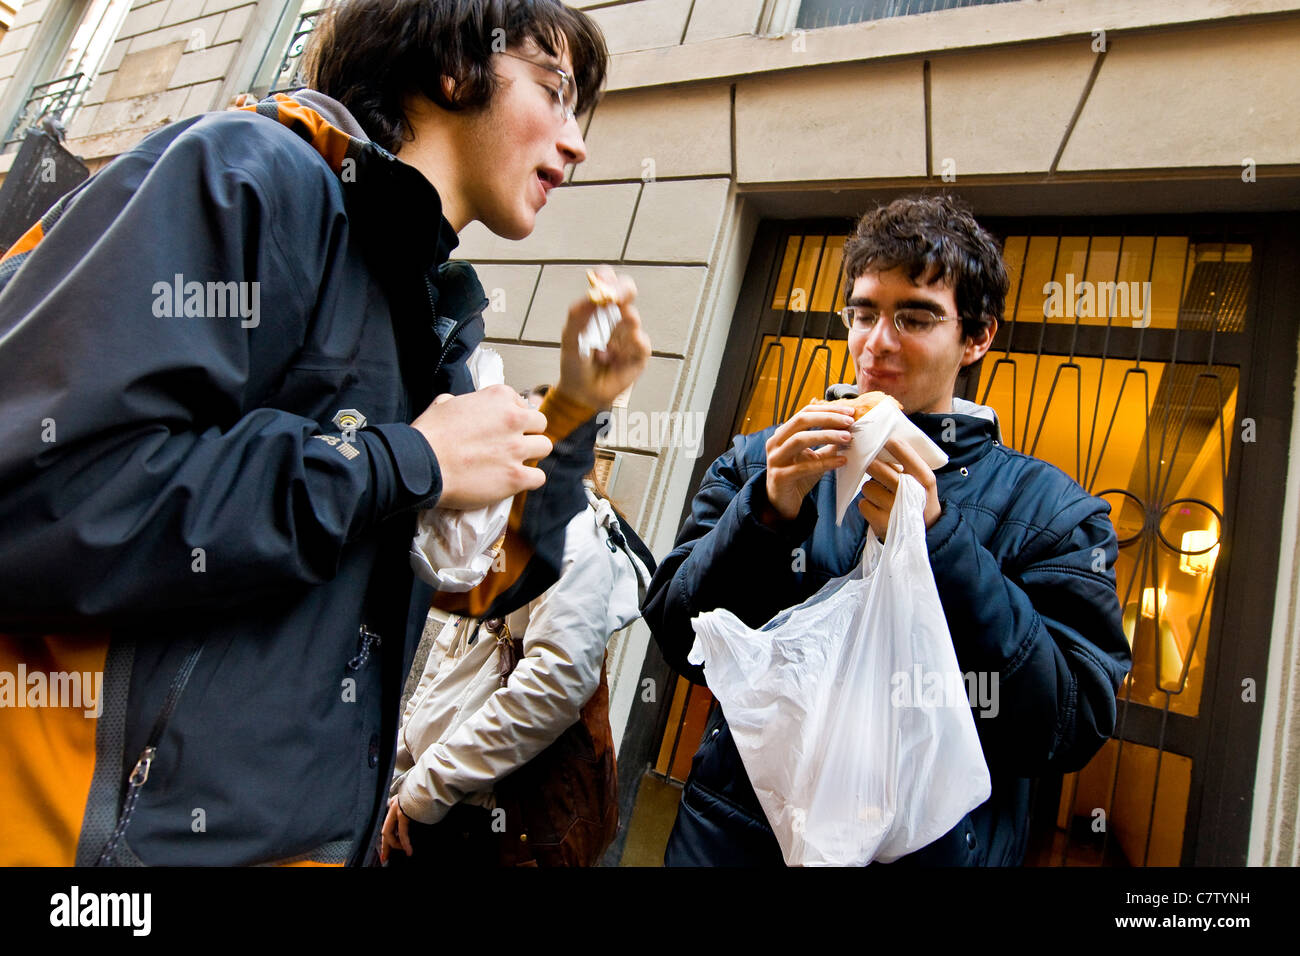 Teenage boys having a snack outdoors - Stock Image